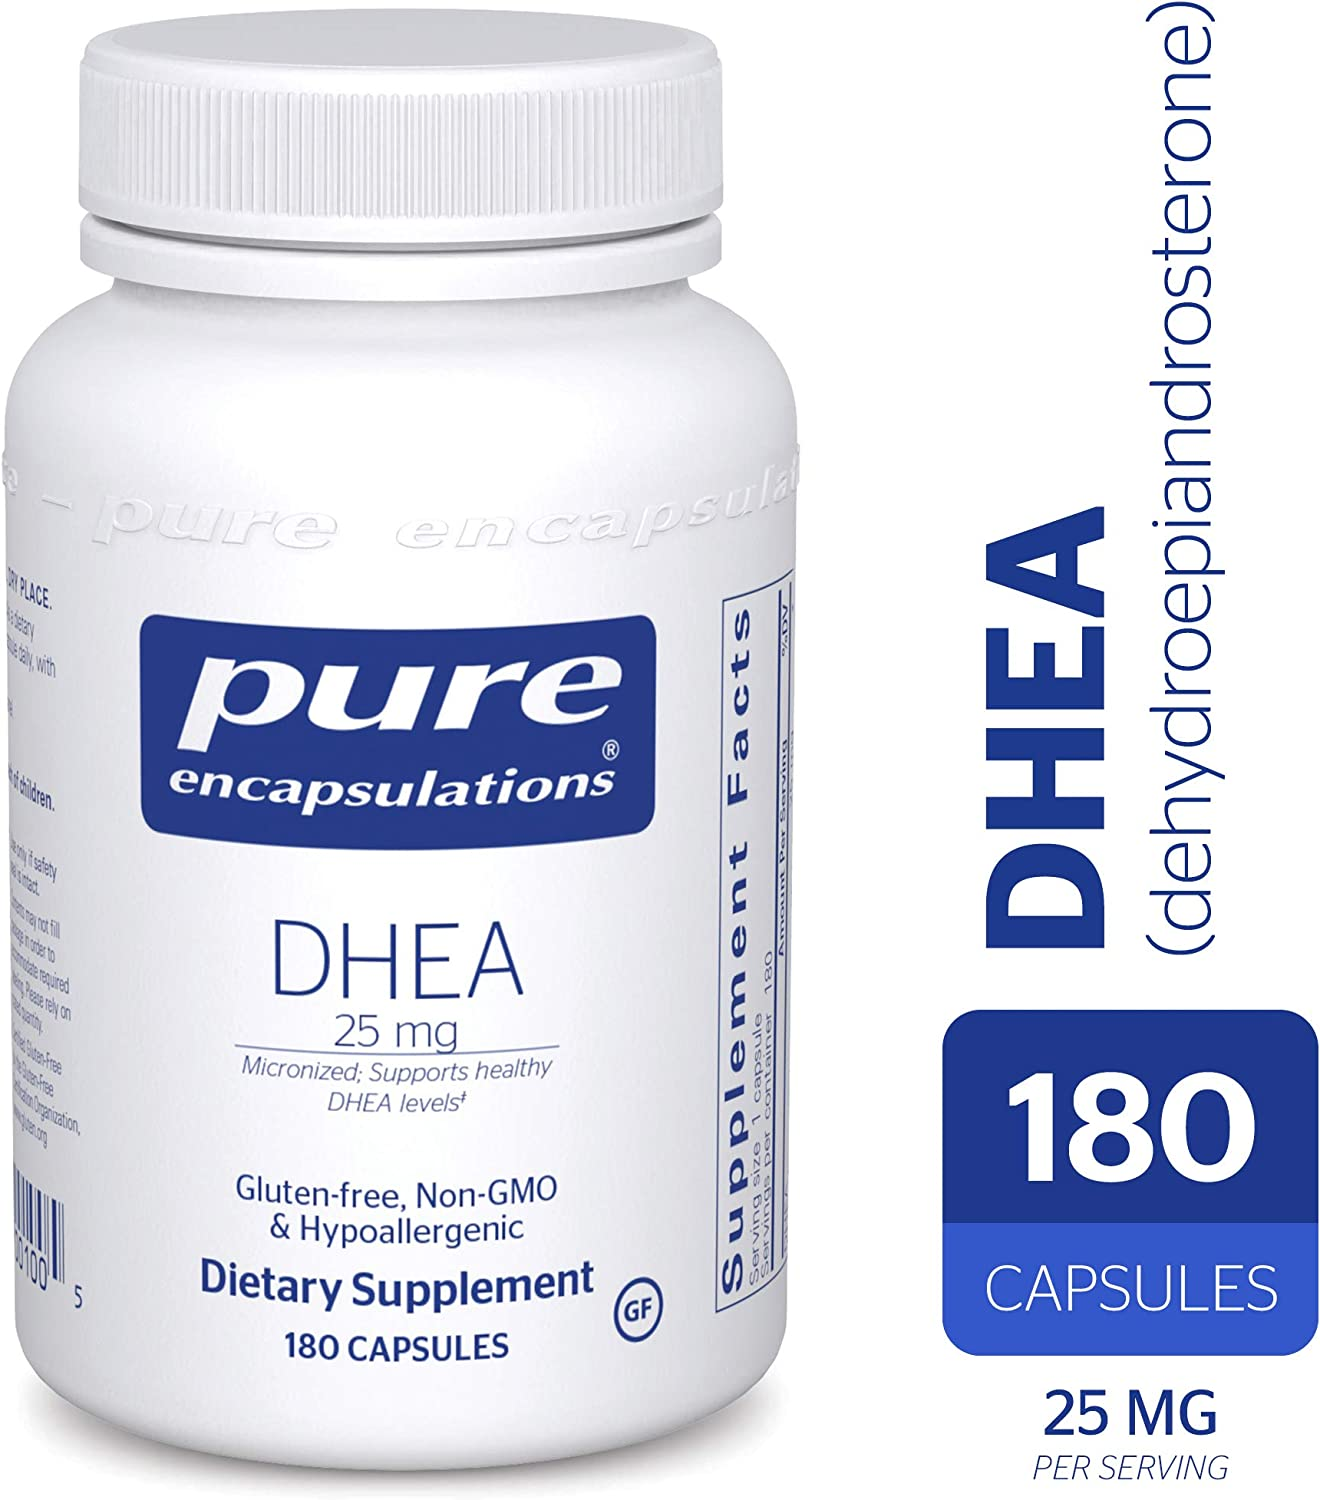 Pure Encapsulations – DHEA Dehydroepiandrosterone 25 mg – Micronized Hypoallergenic Supplement – 180 Capsules